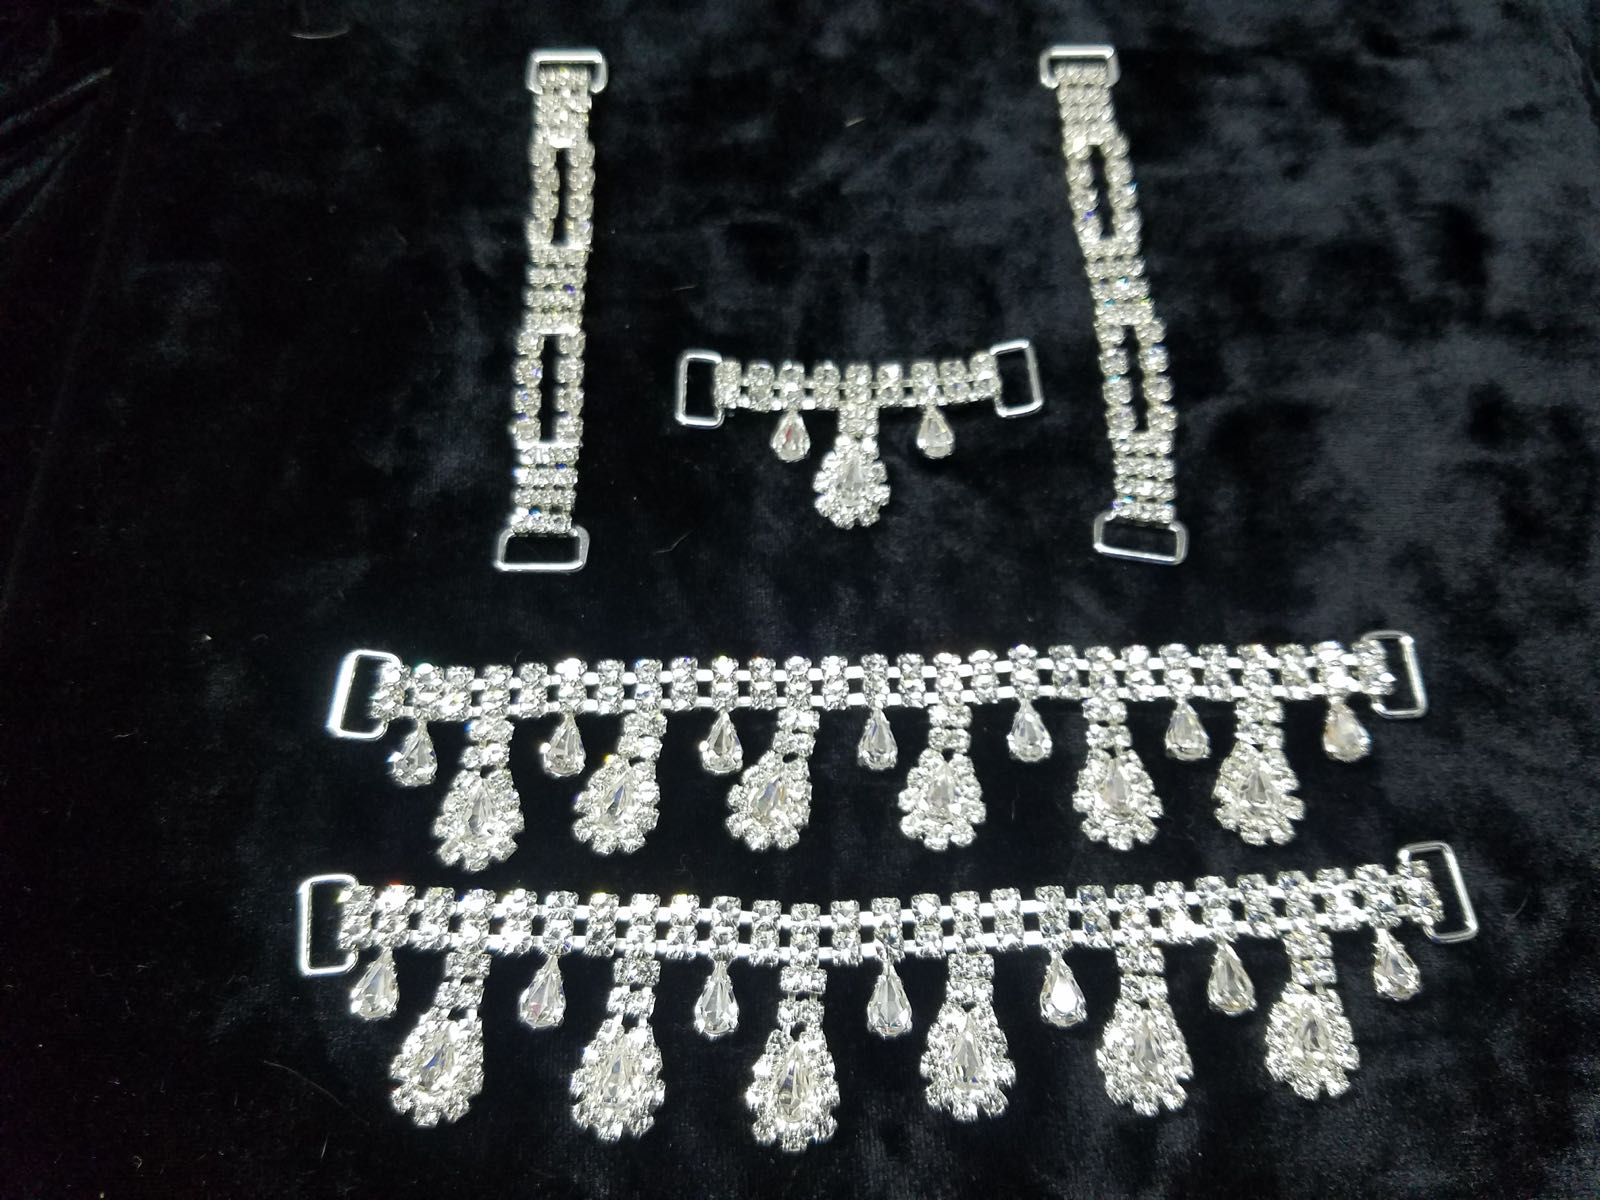 Set B, Silver with clear crystals, $85.00